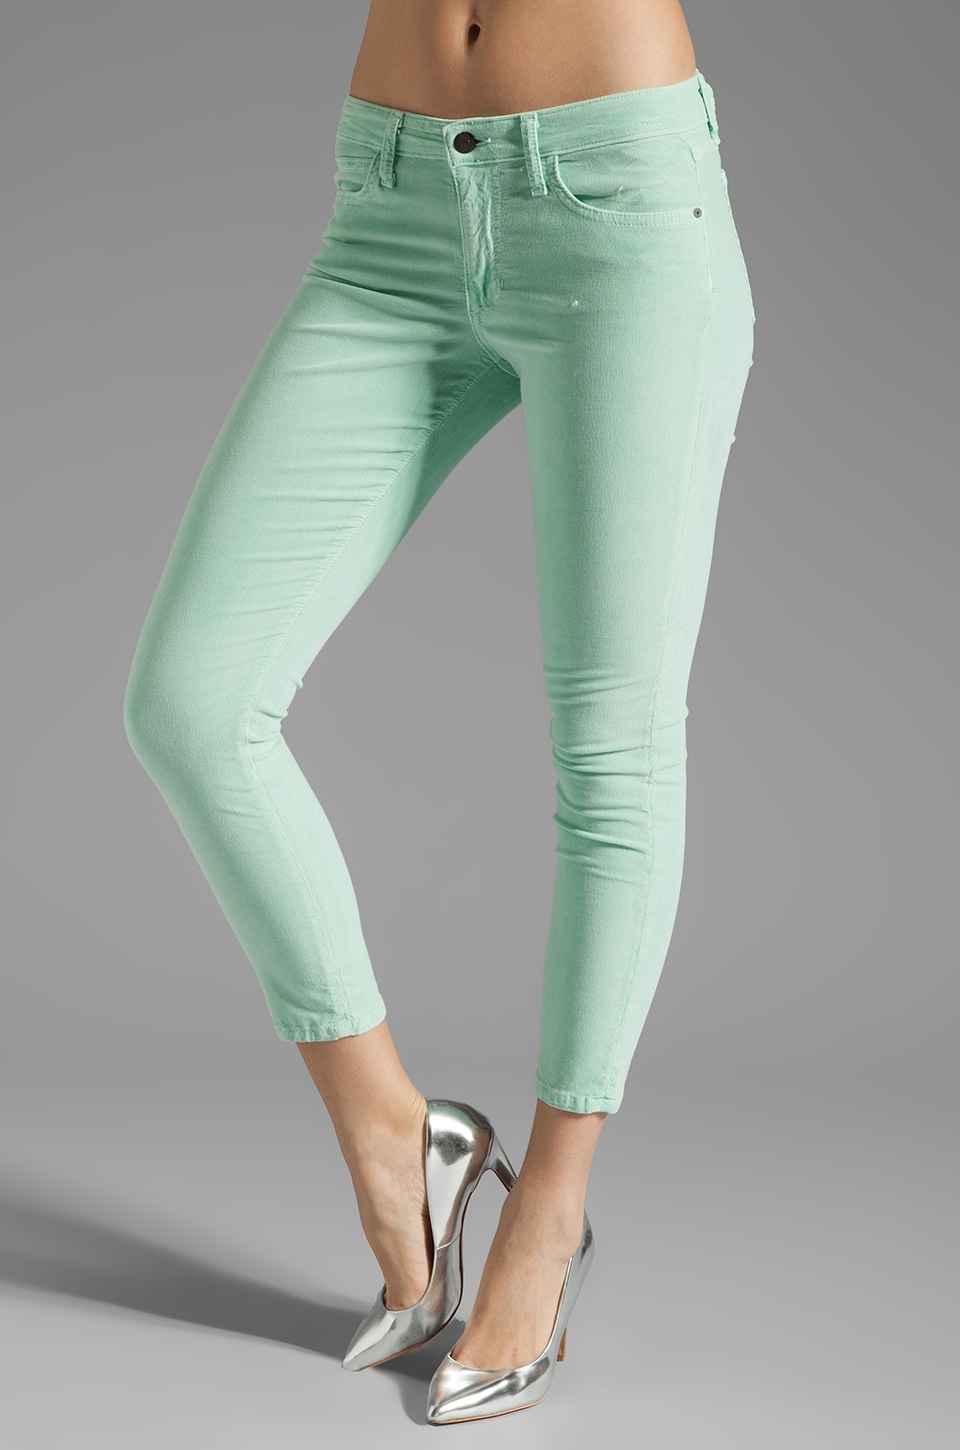 Joe's Jeans The High Water in Menthol